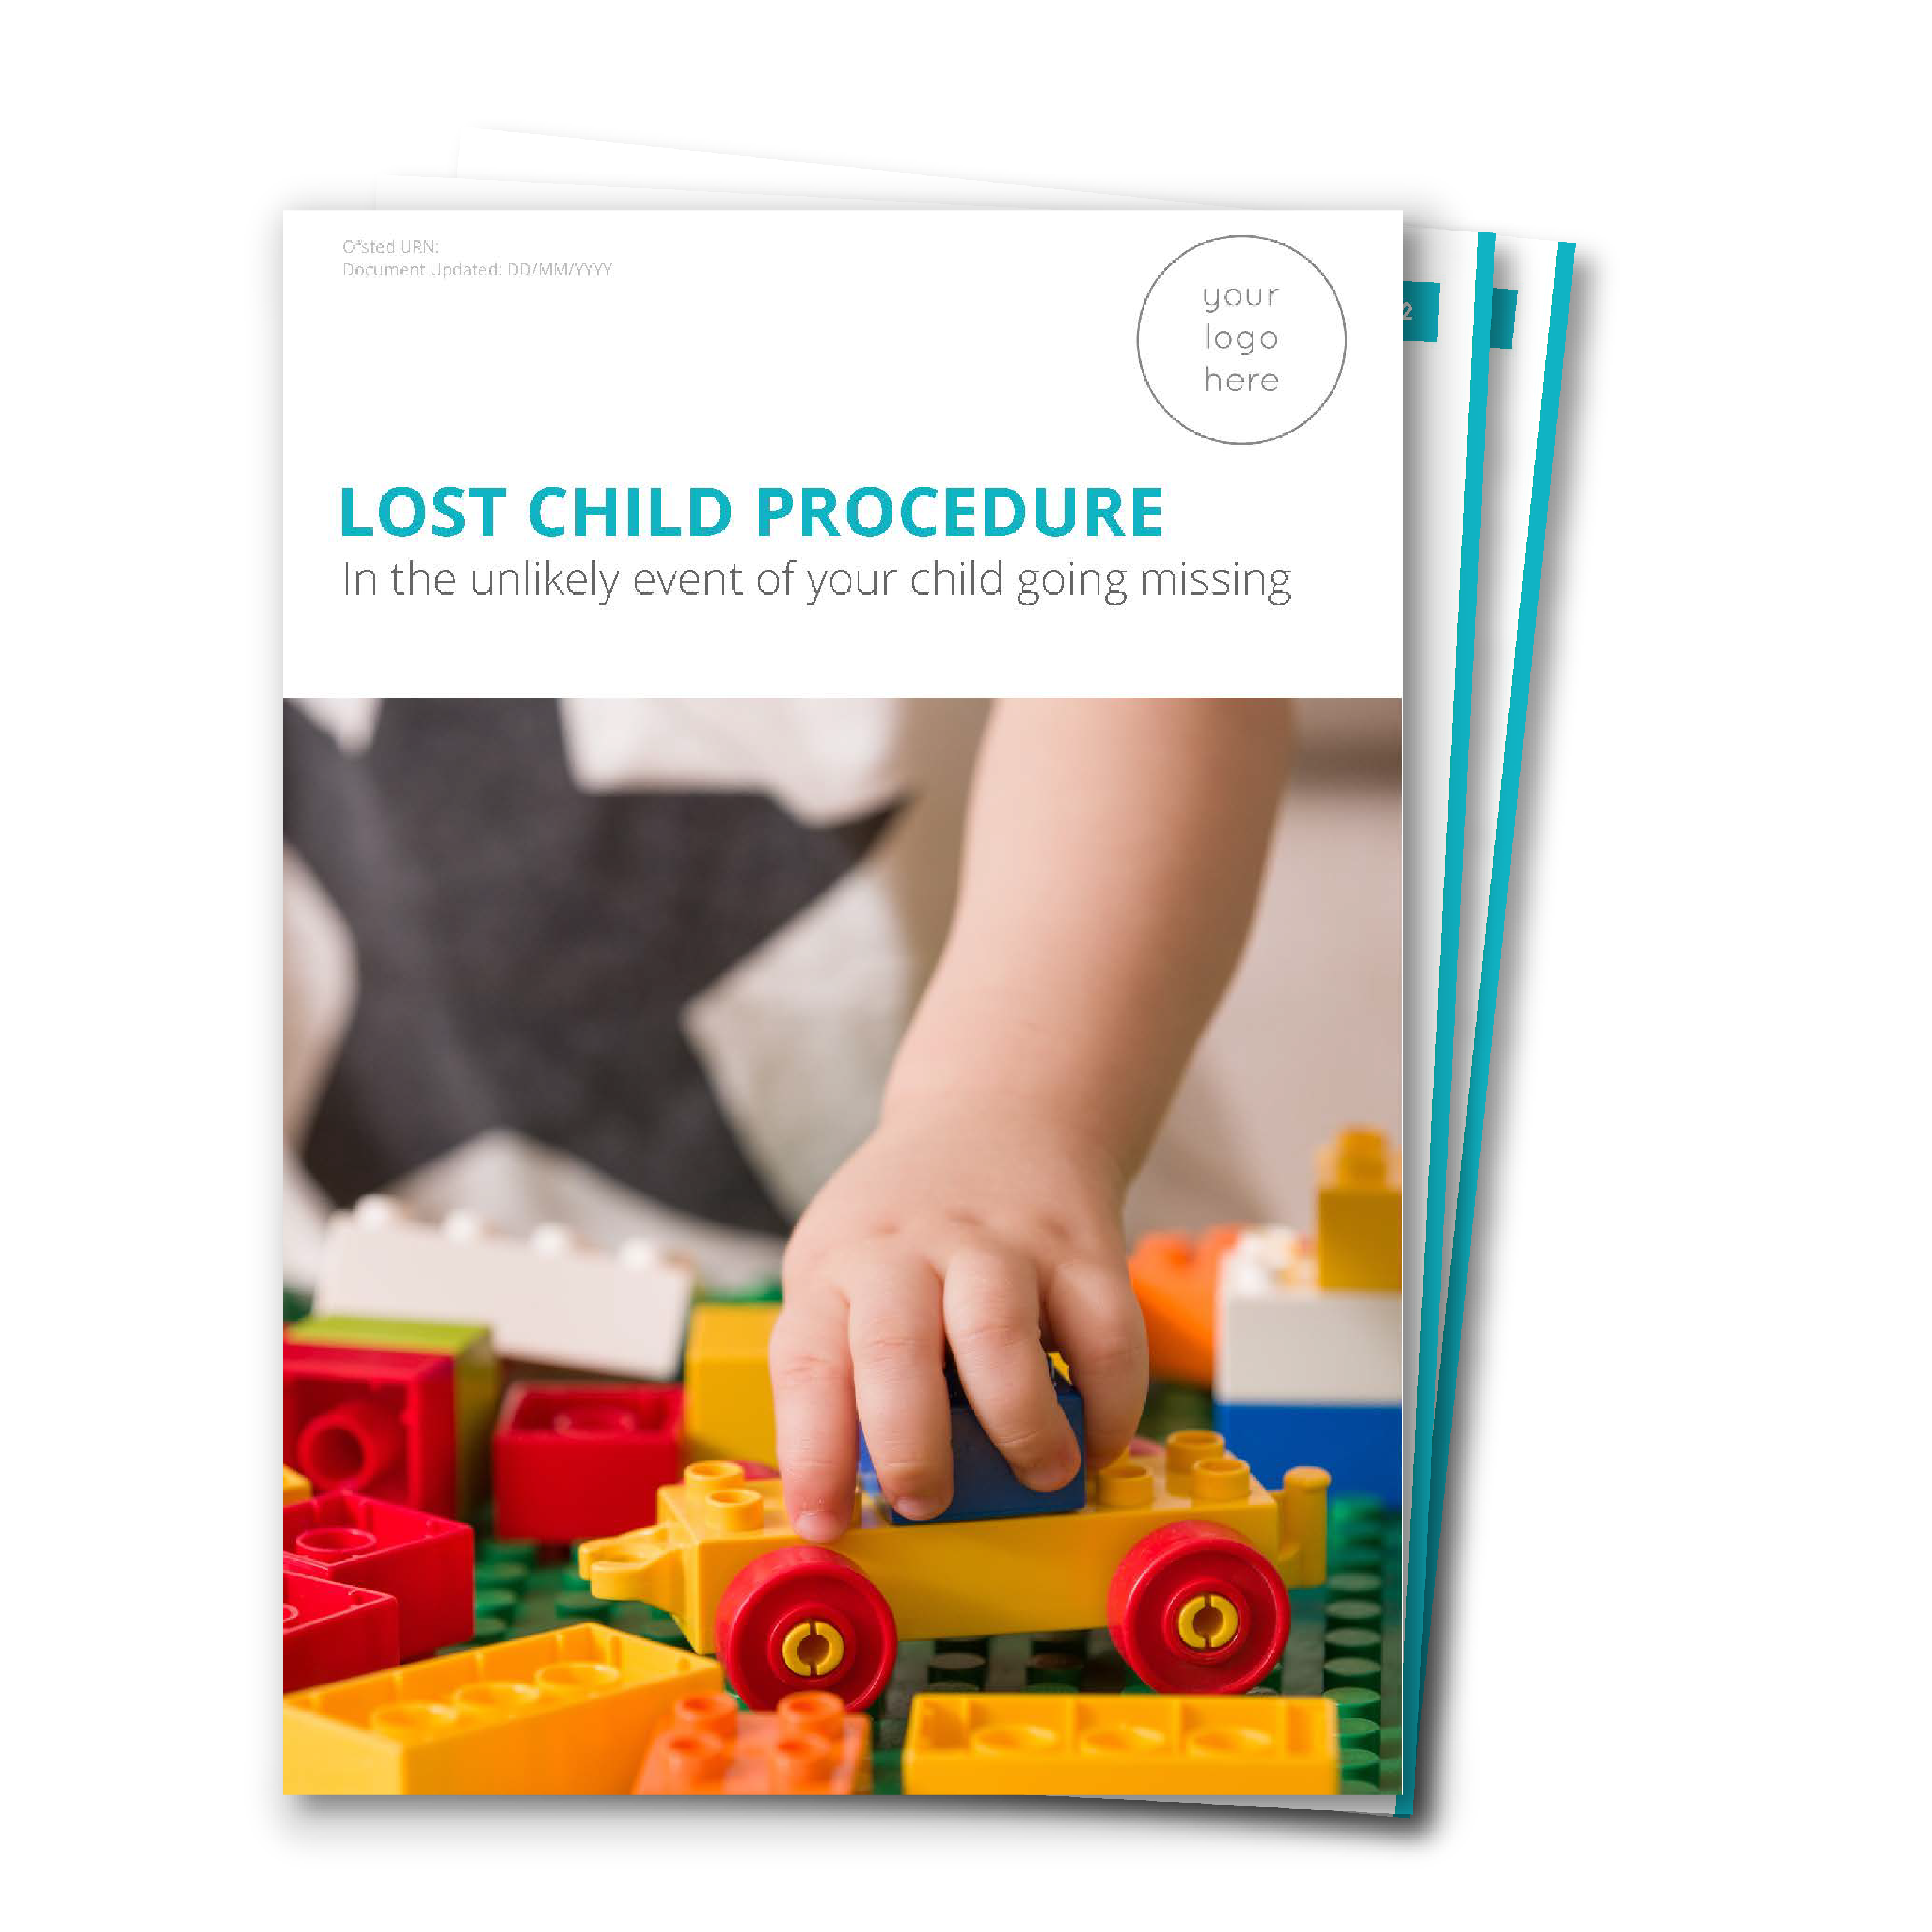 Lost Child Procedure